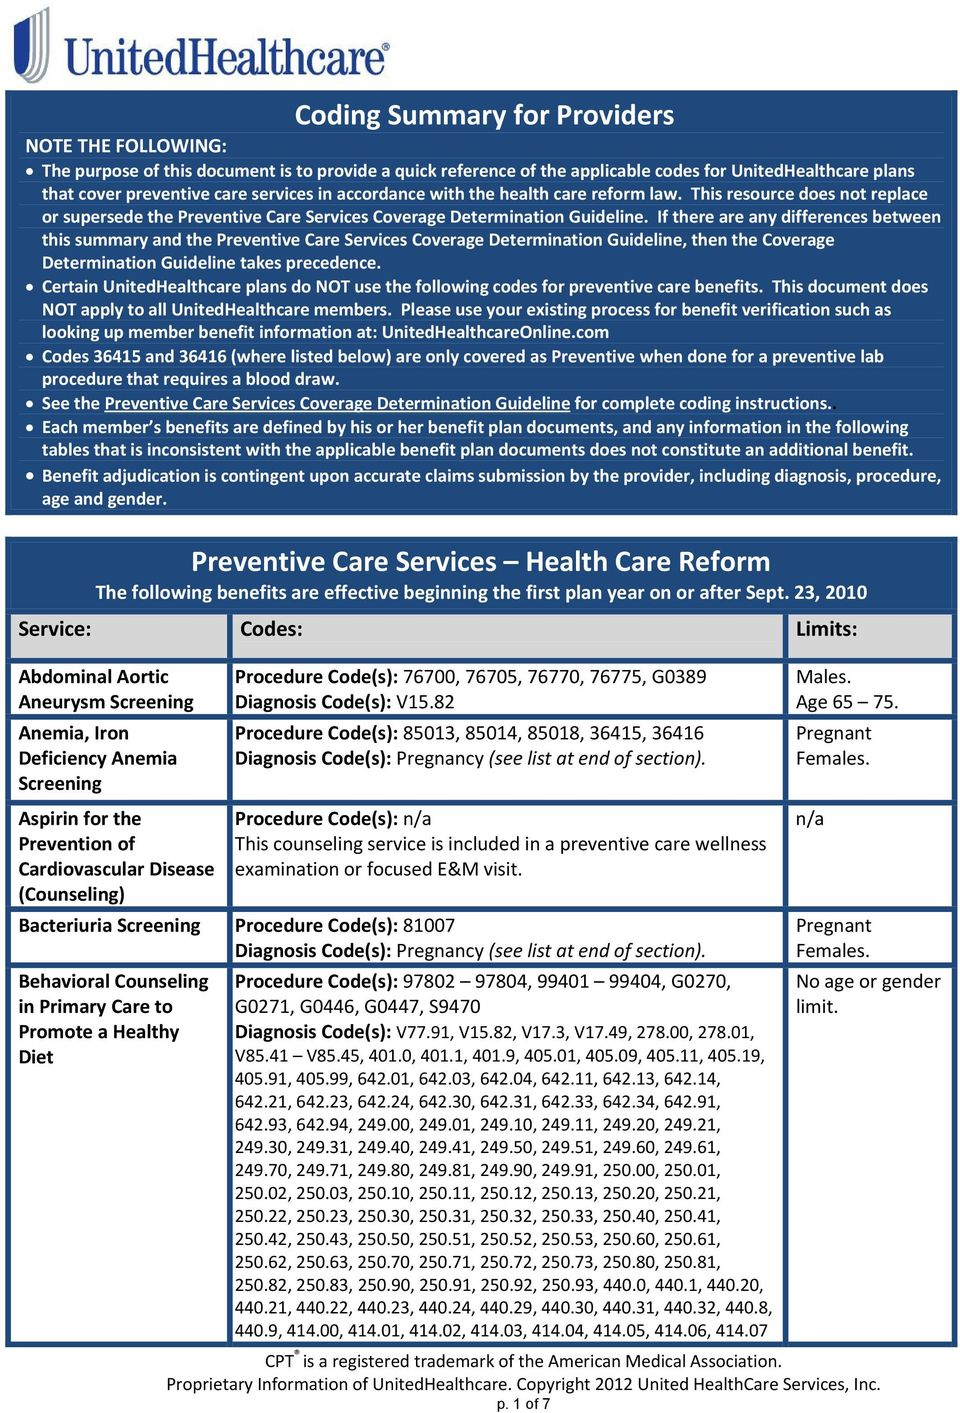 If there are any differences between this summary and the Preventive Care Services Coverage Determination Guideline, then the Coverage Determination Guideline takes precedence.